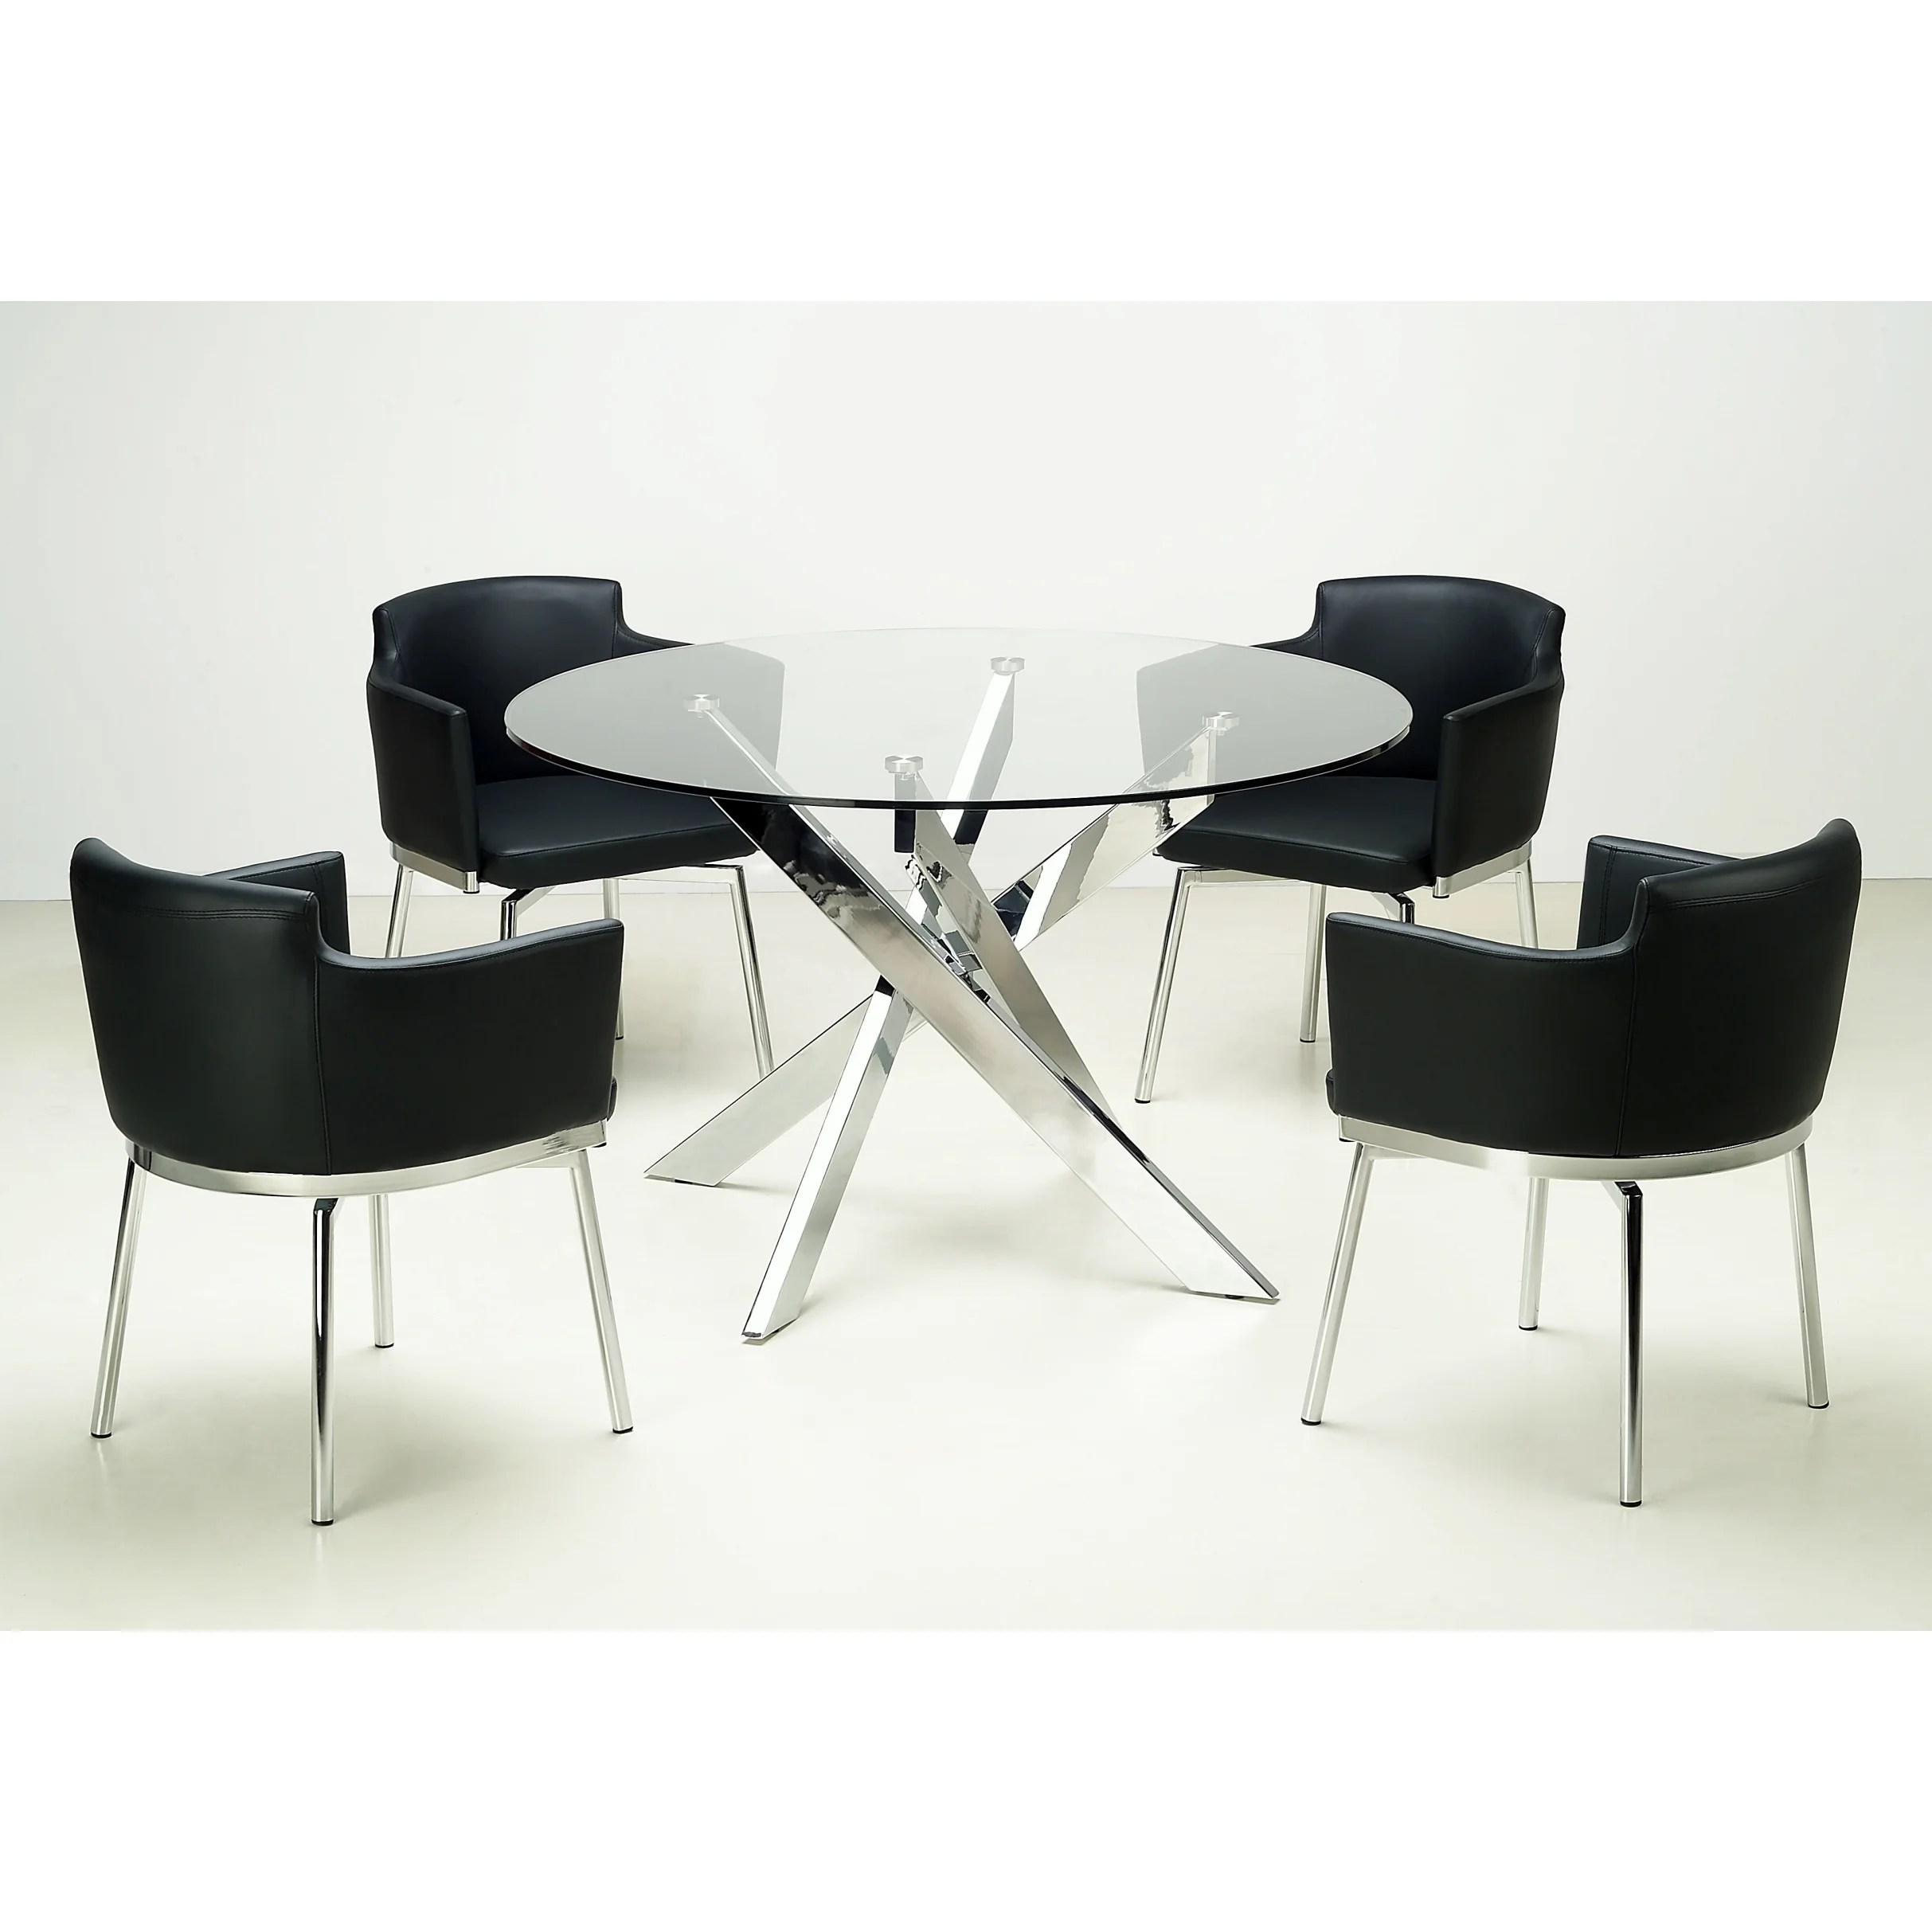 Round Glass Top Dining Table Details About Somette Round Glass Top Chrome Dining Table Silver